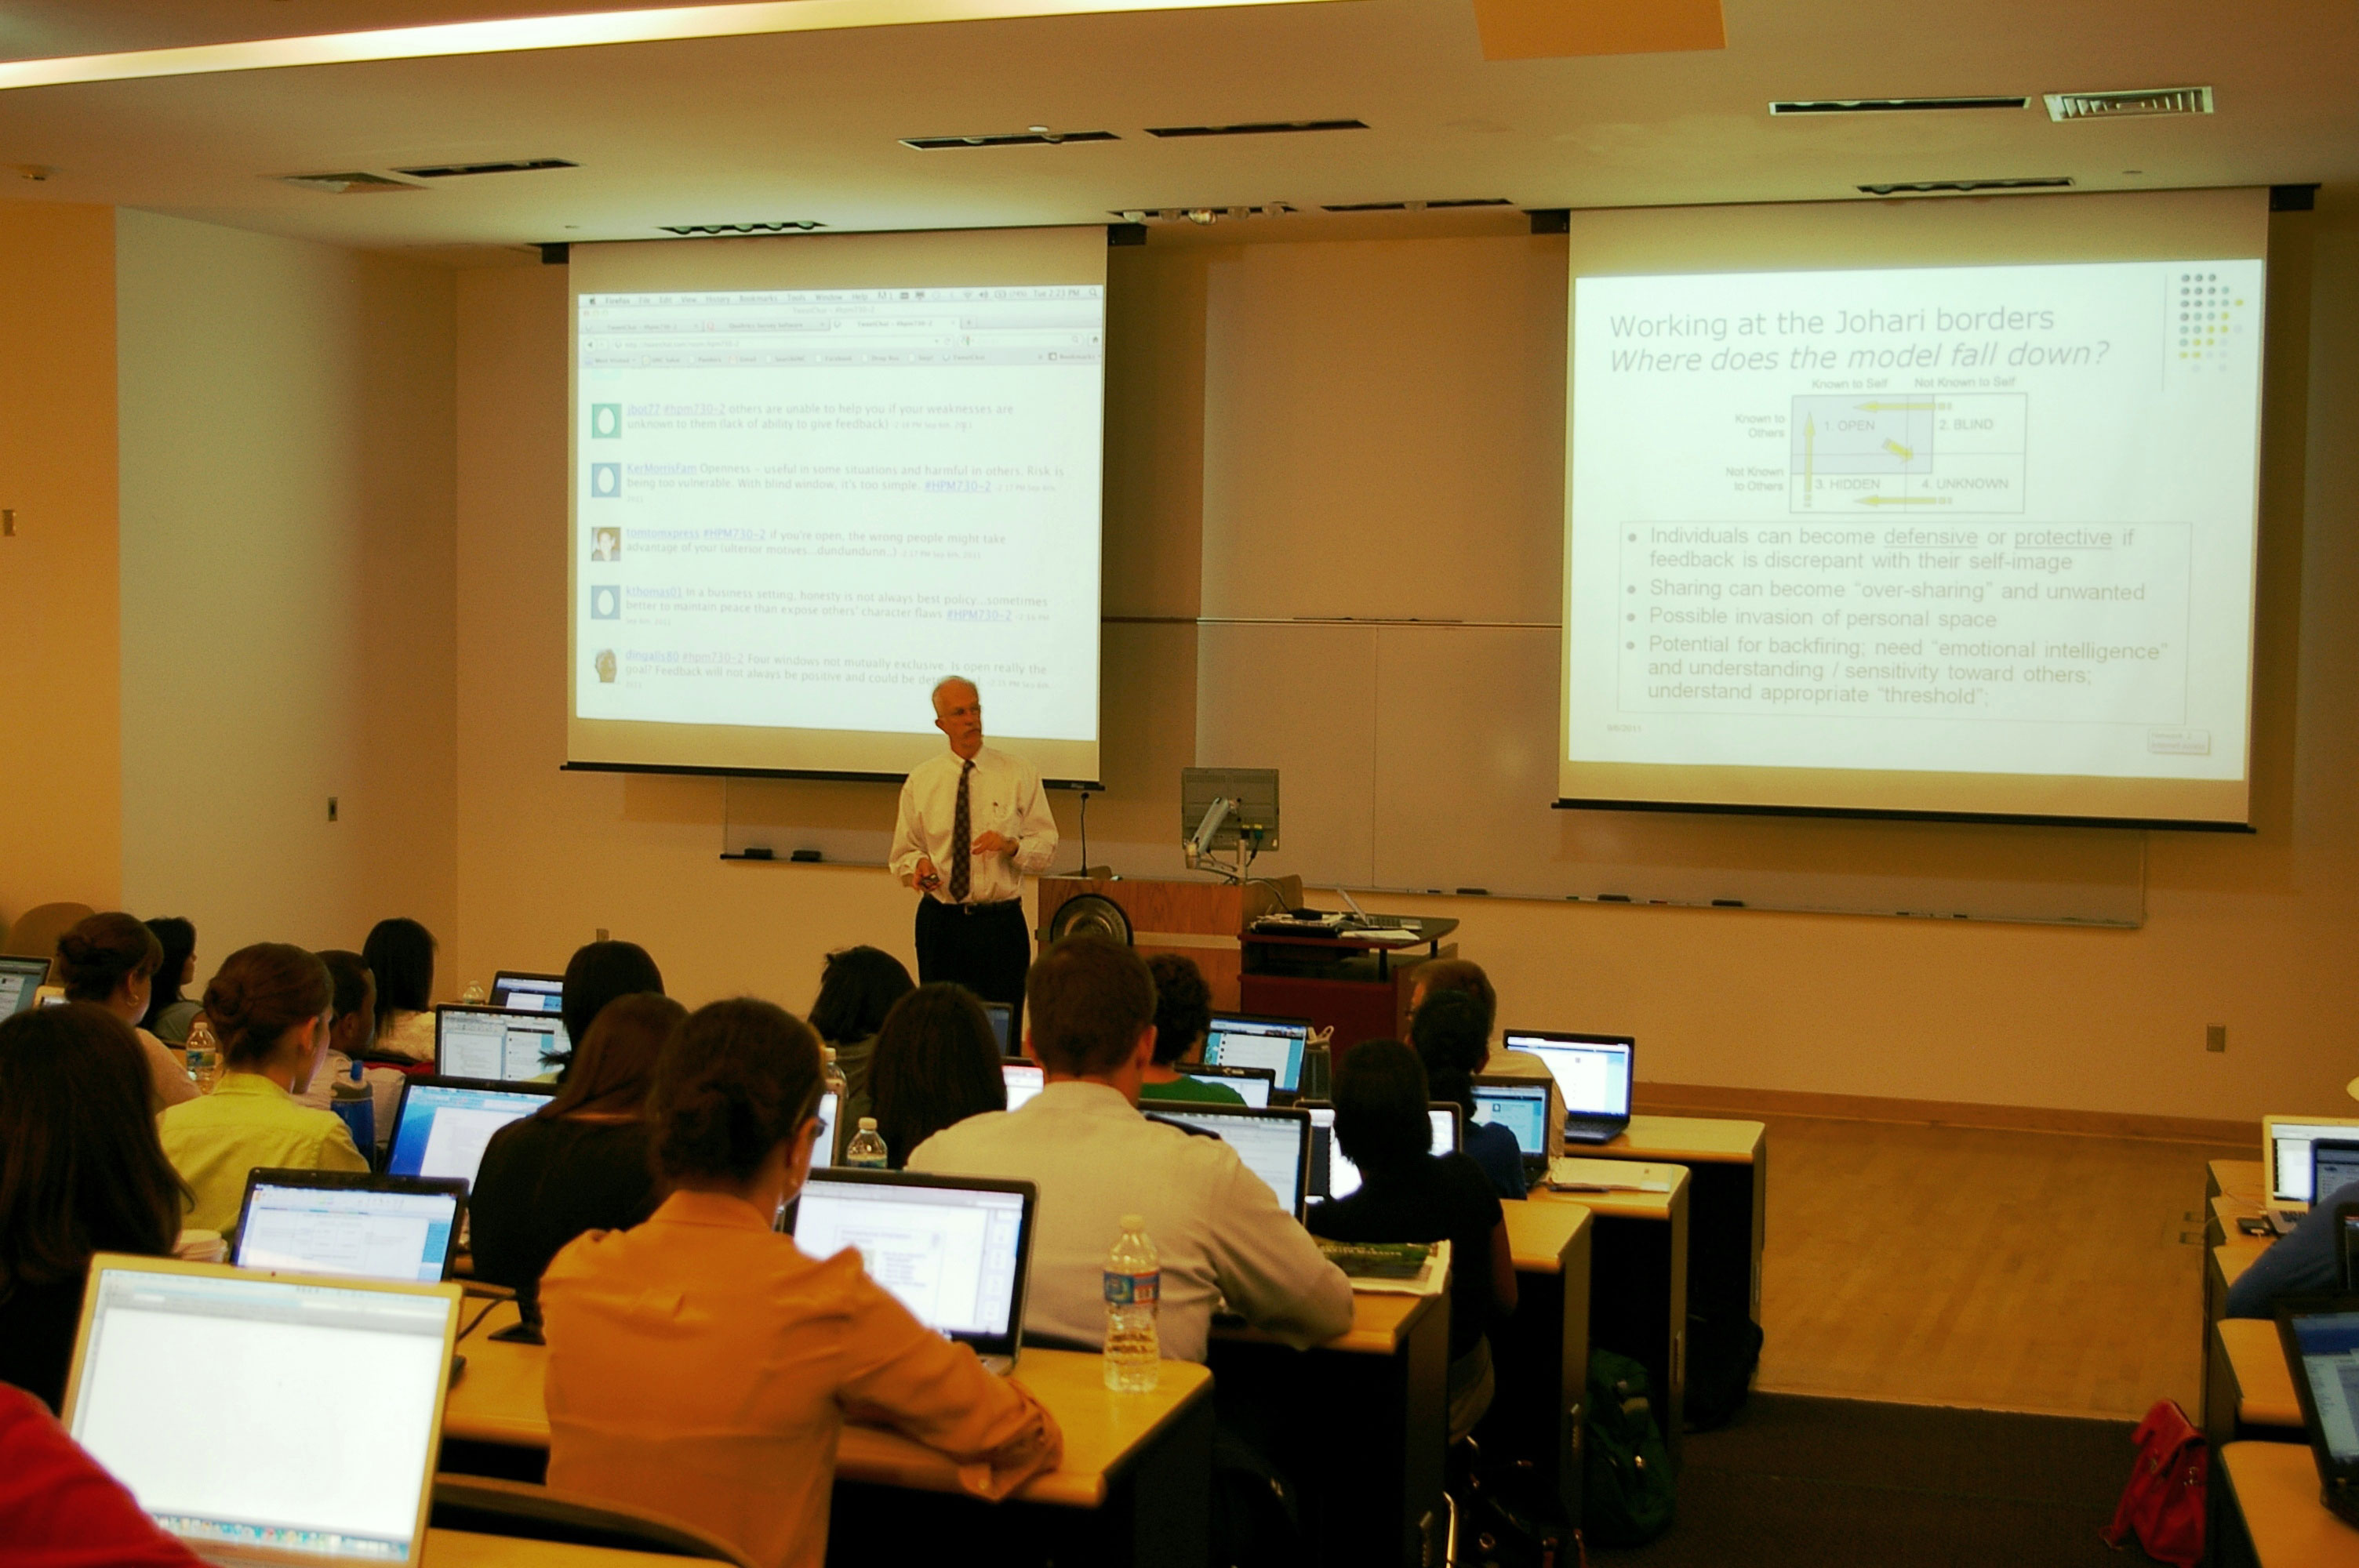 Dr. John Paul uses new technologies to boost student engagement.